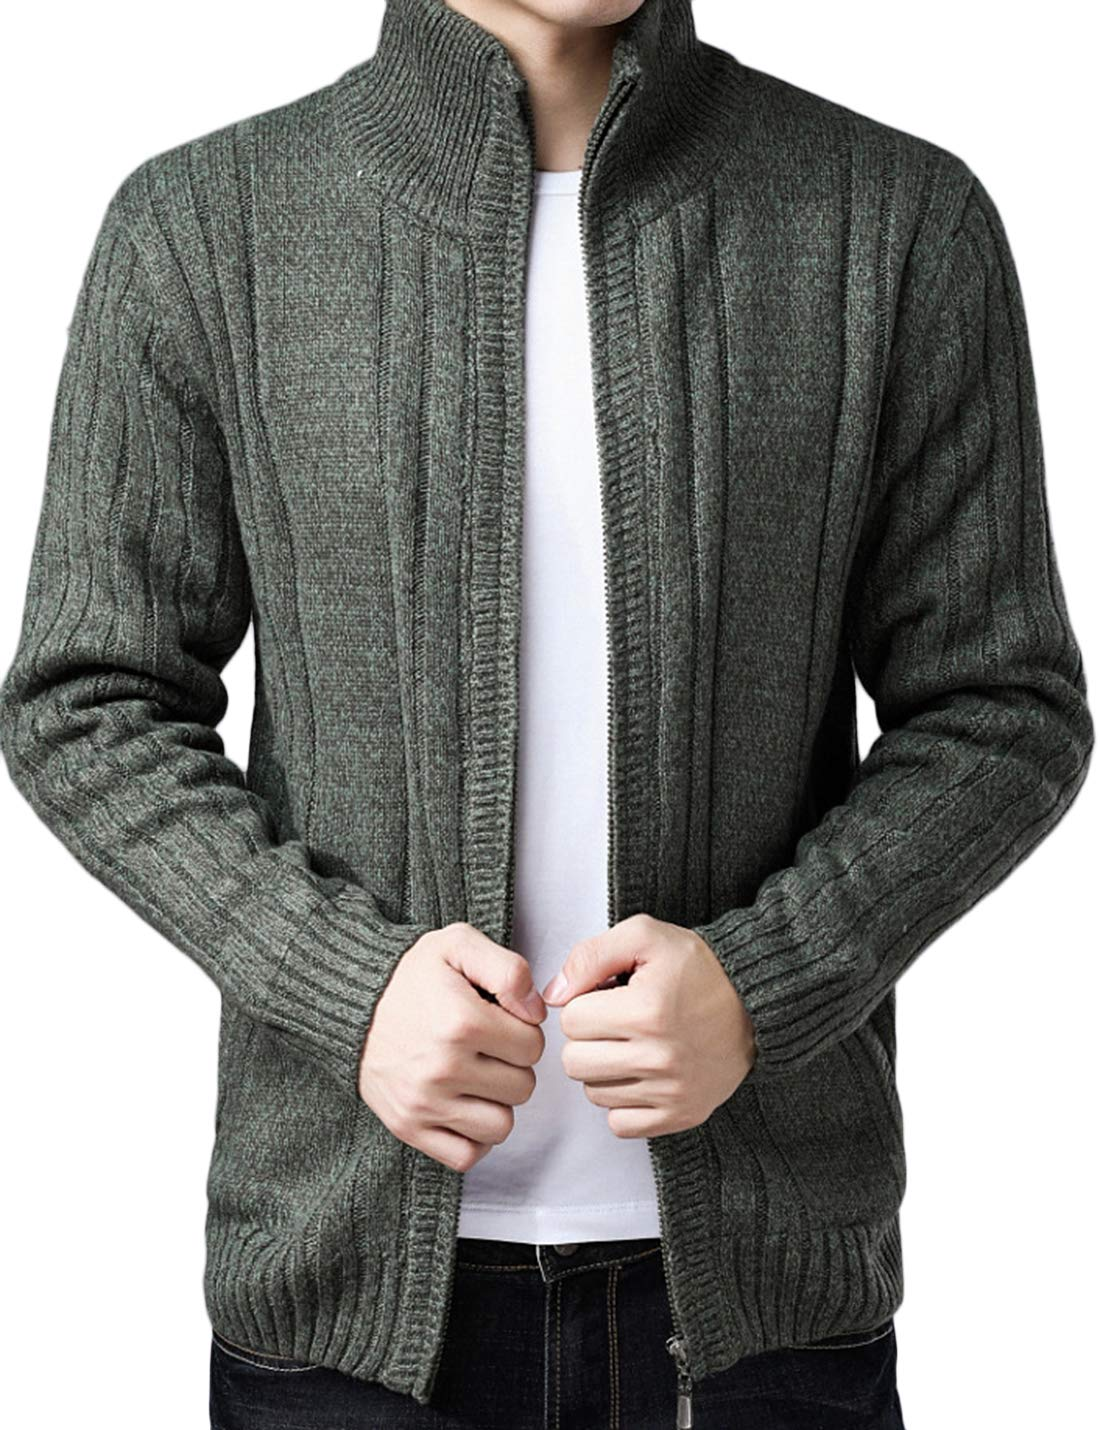 Lentta Mens Slim Fit Solid Stand Collar Full Zip Up Sherpa Lined Cardigan Sweater (X-Small, Army Green) by Lentta